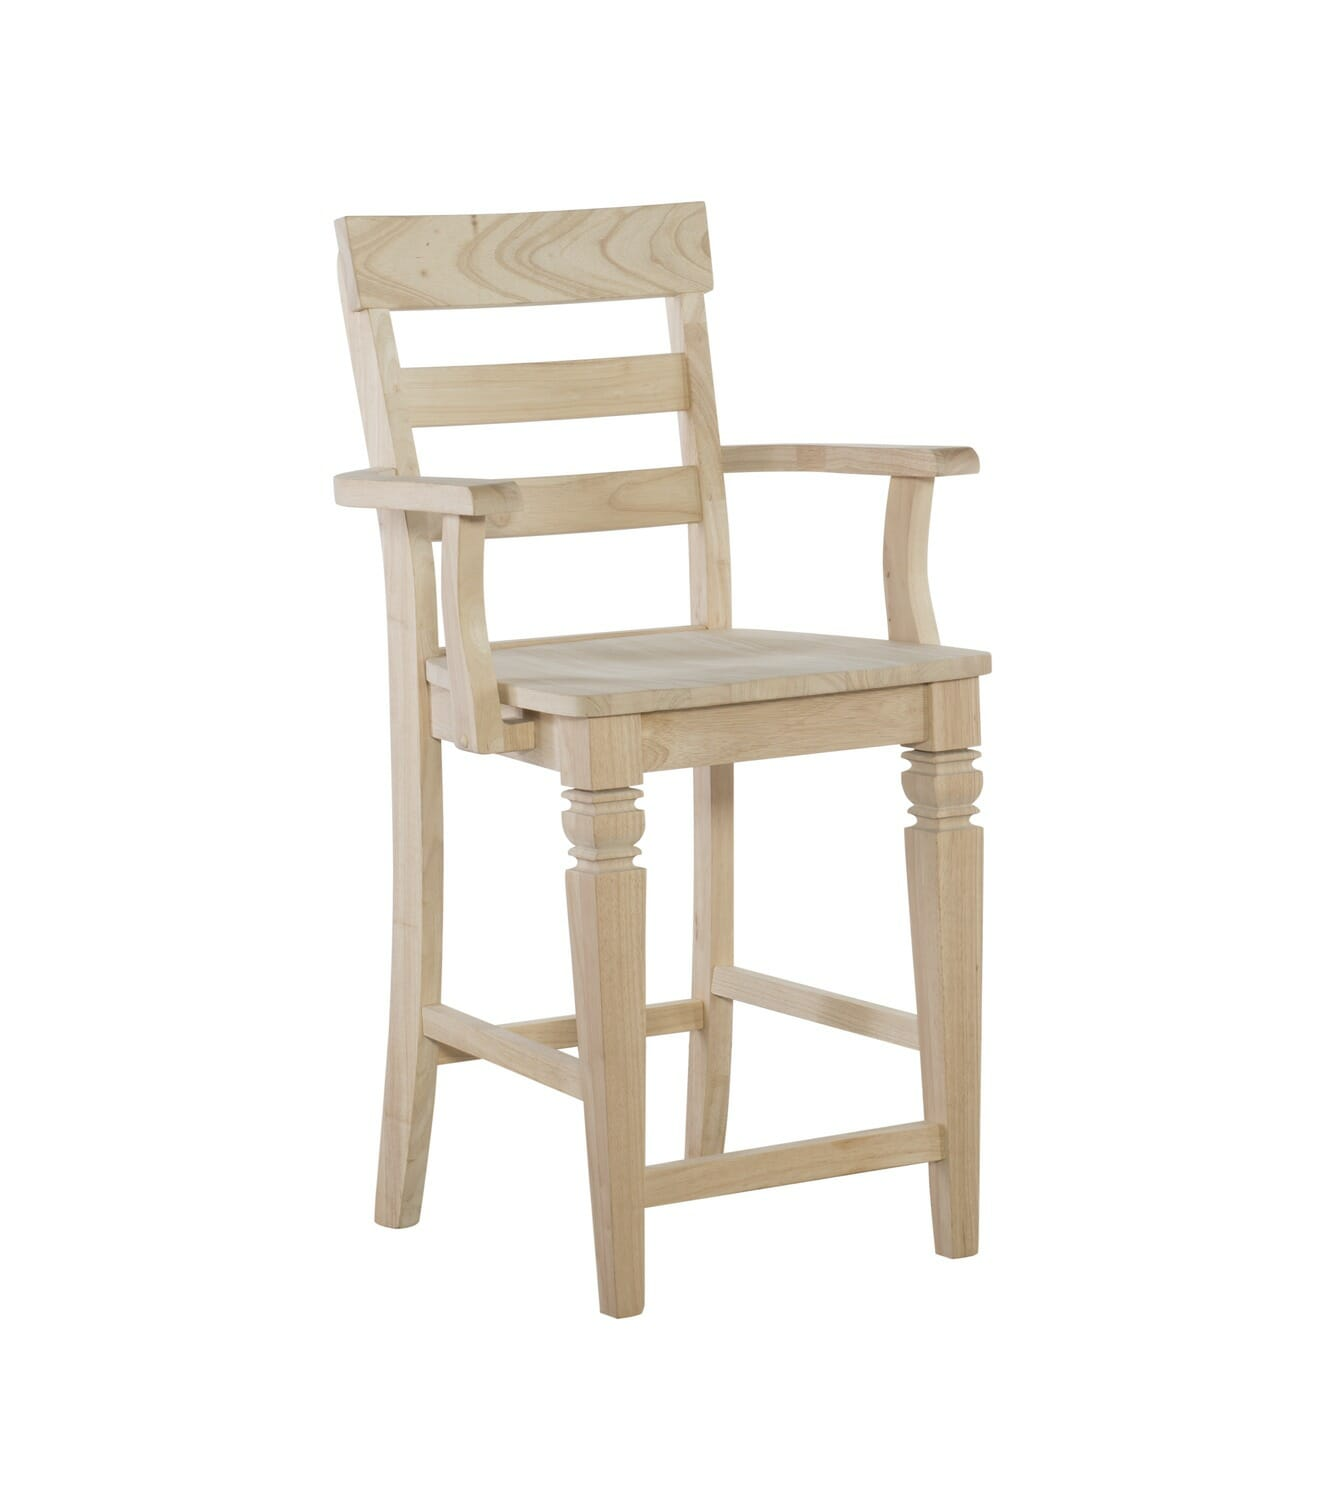 Stools with Arms